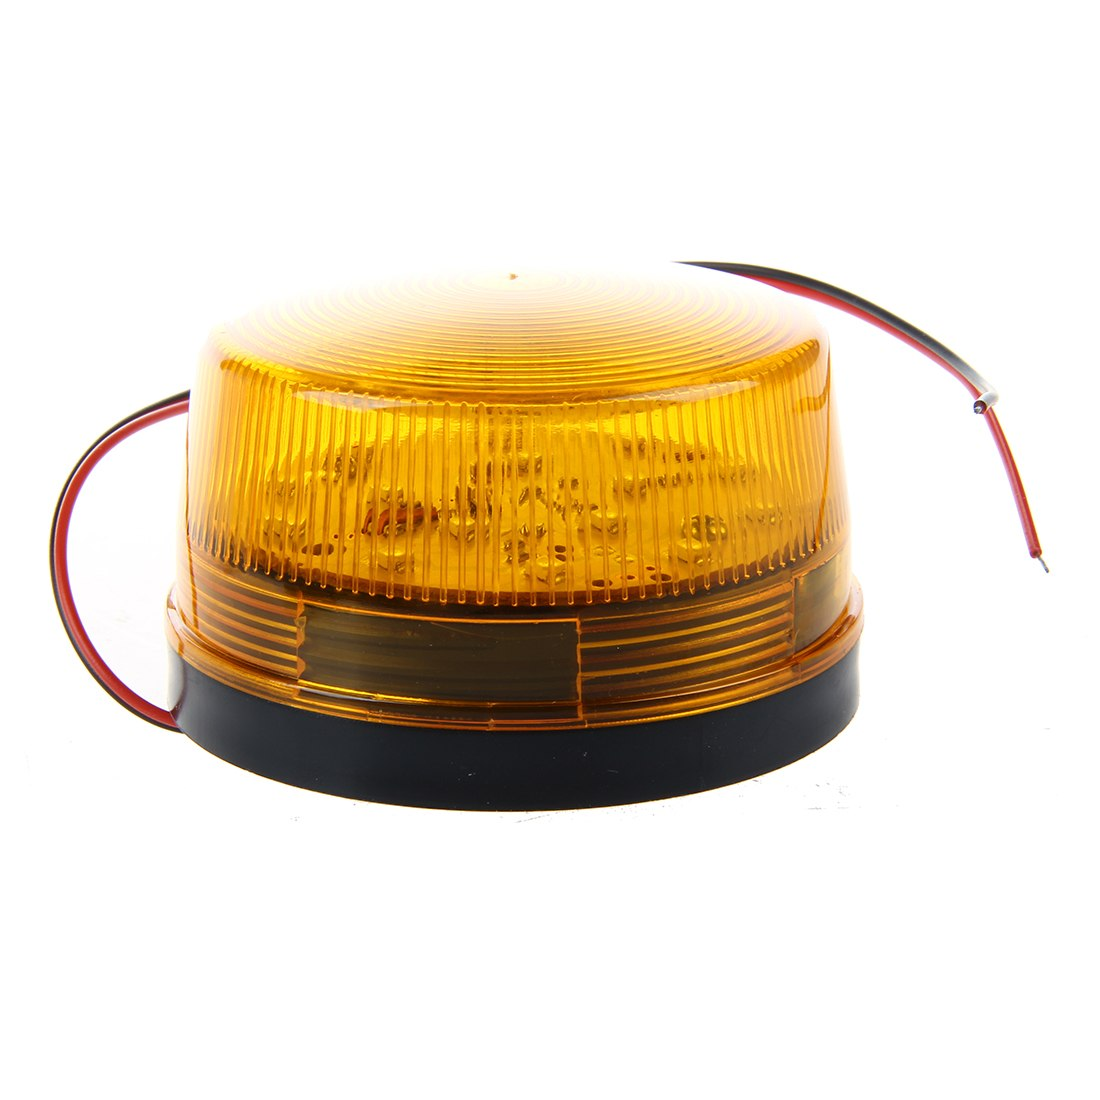 2 Pcs Of MOOL 12V Security Alarm Strobe Signal Safety Warning Blue/Red Flashing LED Light Orange